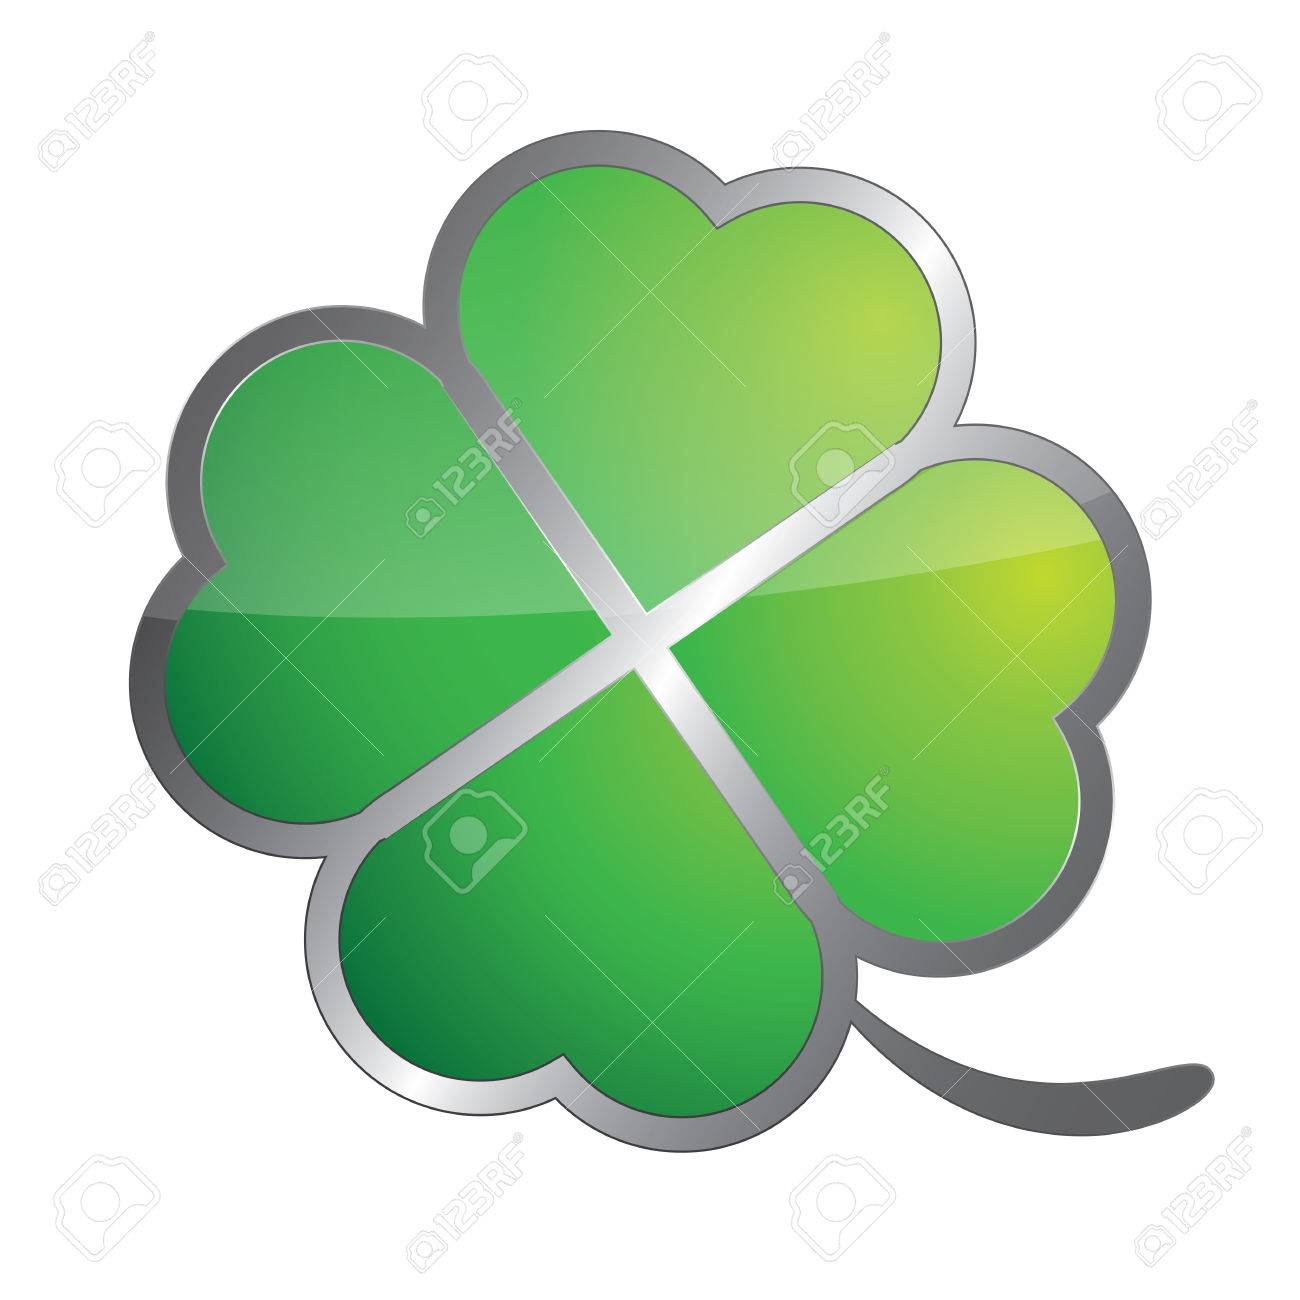 Four Leaf Clover Symbol Isolated On White Royalty Free Cliparts